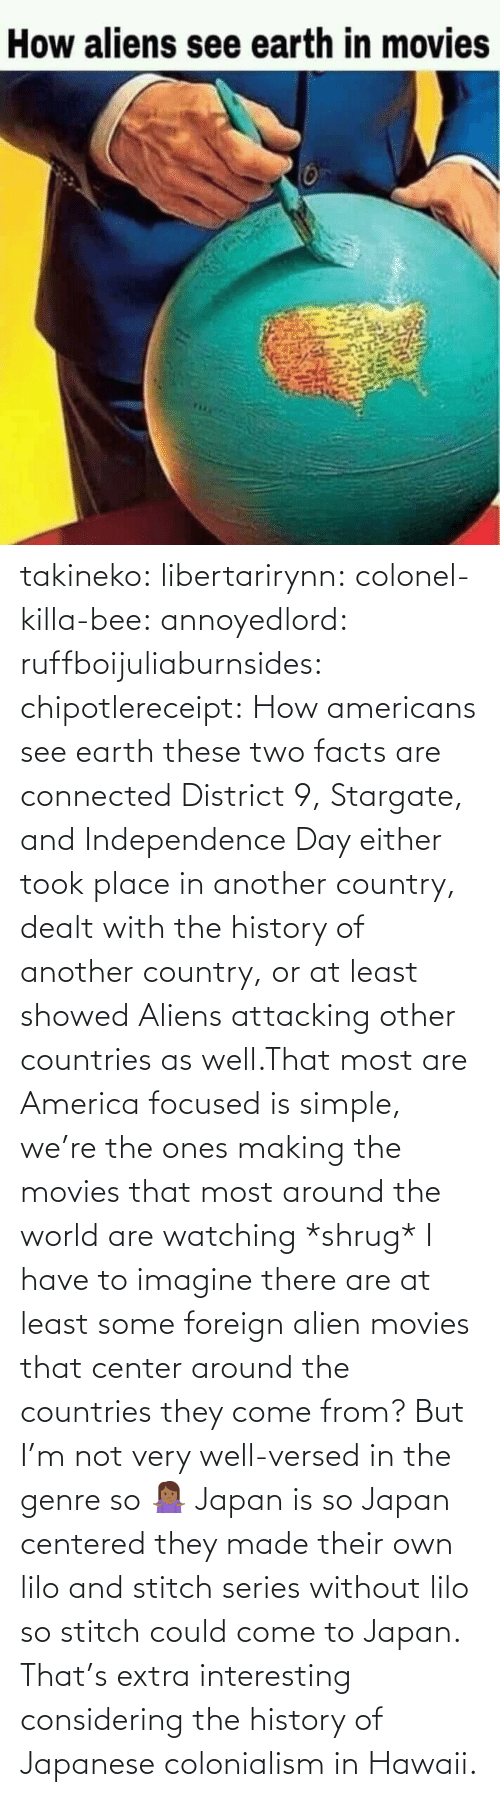 America, Facts, and Independence Day: takineko:  libertarirynn:  colonel-killa-bee:  annoyedlord: ruffboijuliaburnsides:  chipotlereceipt: How americans see earth these two facts are connected     District 9, Stargate, and Independence Day either took place in another country, dealt with the history of another country, or at least showed Aliens attacking other countries as well.That most are America focused is simple, we're the ones making the movies that most around the world are watching *shrug*   I have to imagine there are at least some foreign alien movies that center around the countries they come from? But I'm not very well-versed in the genre so 🤷🏾♀️   Japan is so Japan centered they made their own lilo and stitch series without lilo so stitch could come to Japan.    That's extra interesting considering the history of Japanese colonialism in Hawaii.